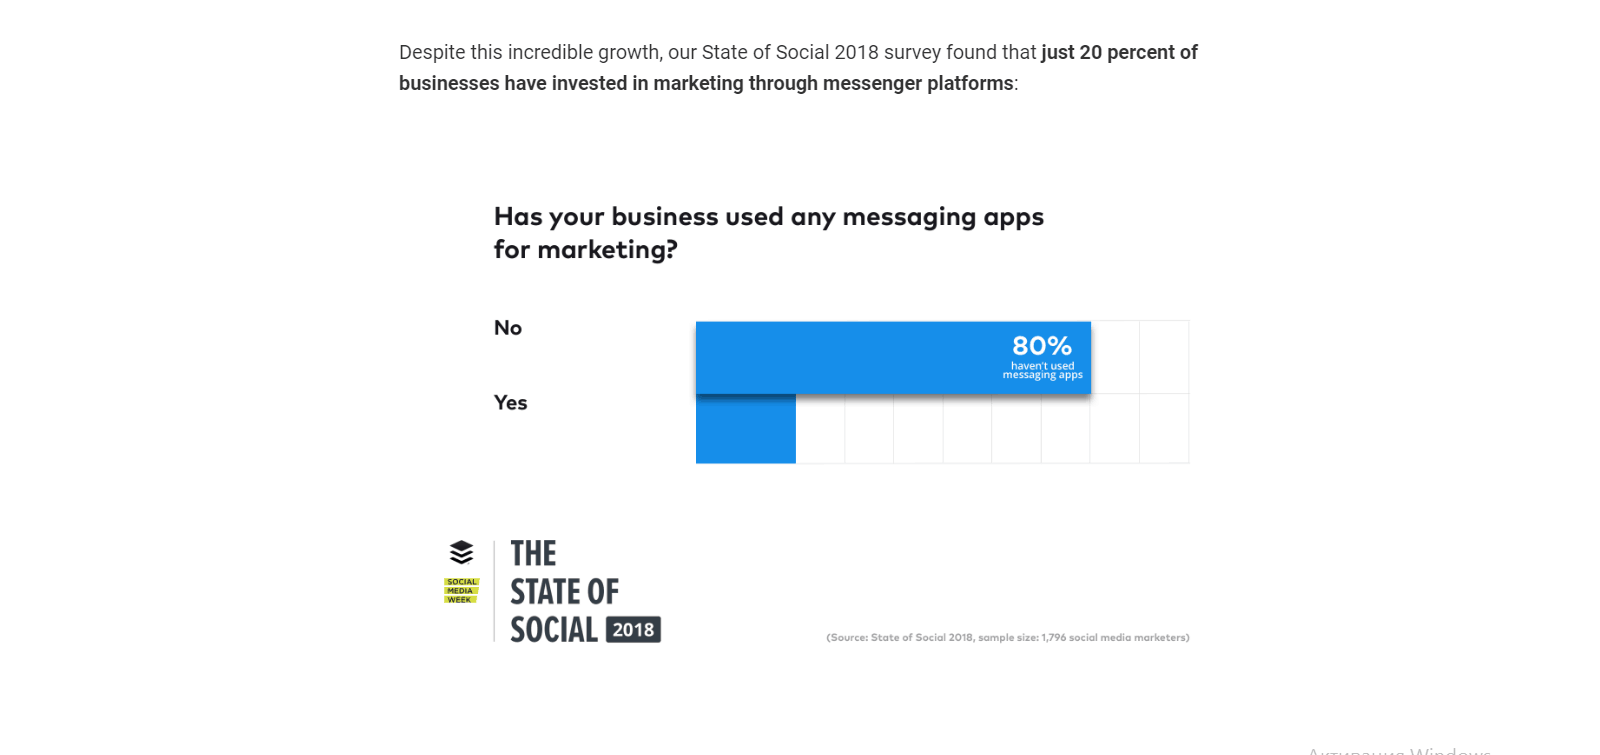 just 20% of businesses have invested in marketing messenger platforms